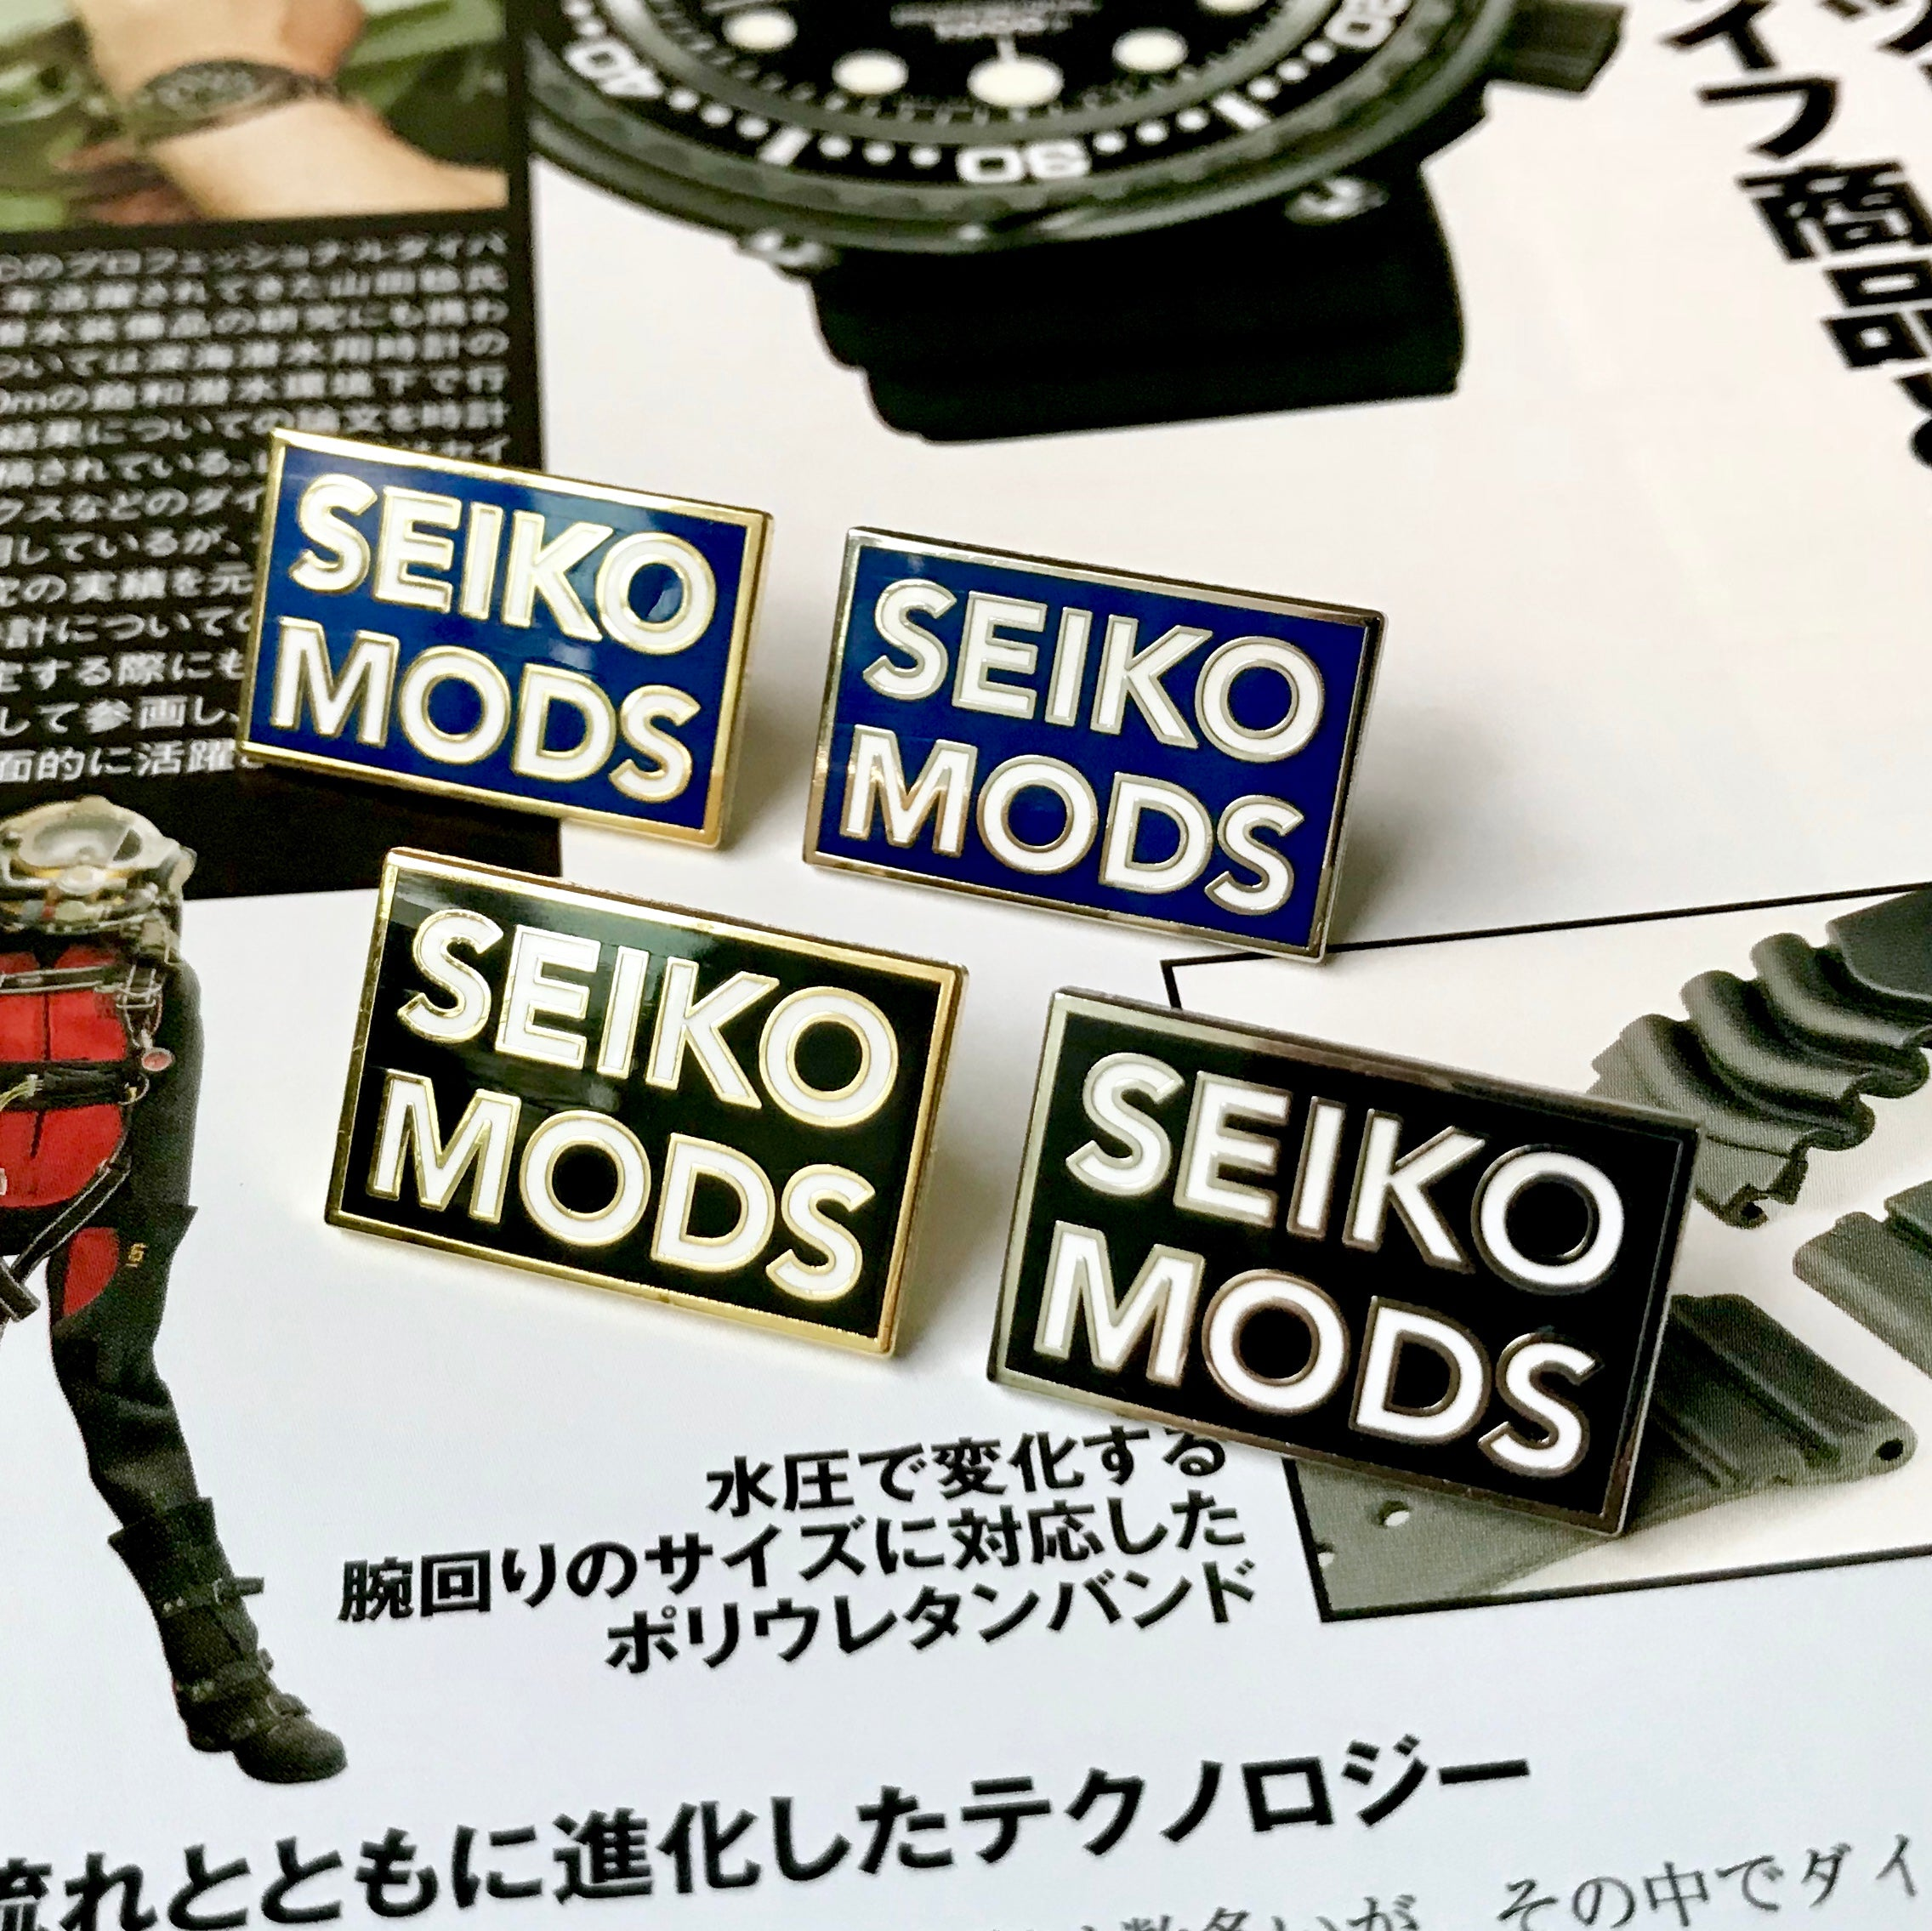 Seiko Mods Facebook Group Enamel Pins